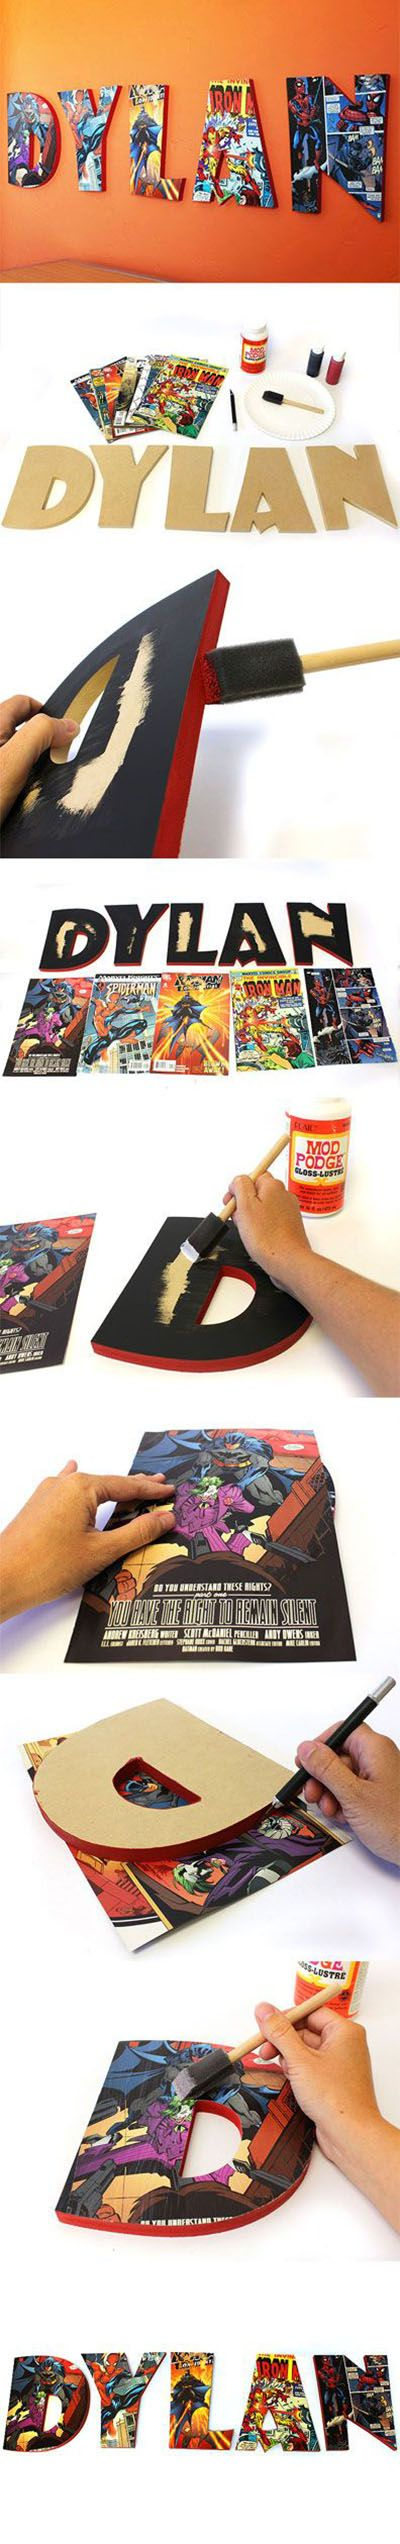 How to Make Comic Book Letters    DIY & Crafts Tutorials                                                                                                                                                      More